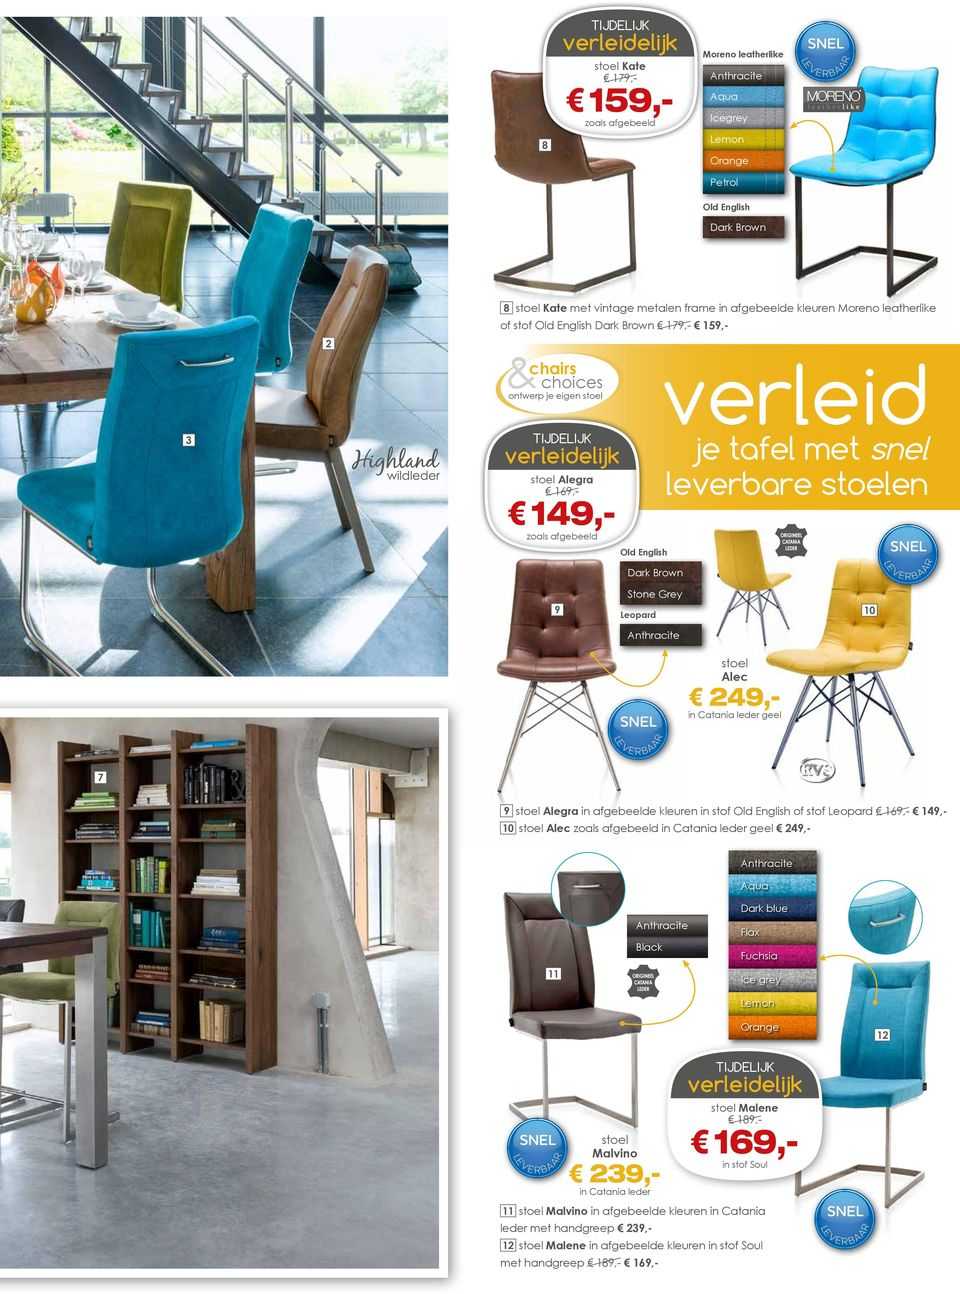 afgebeelde kleuren in stof Old English of stof Leopard 69,- 49,- 0 stoel Alec zoals afgebeeld in Catania leder geel 49,- Aqua Black Dark blue Flax Fuchsia Ice grey Lemon Orange stoel Malvino 7 39,-